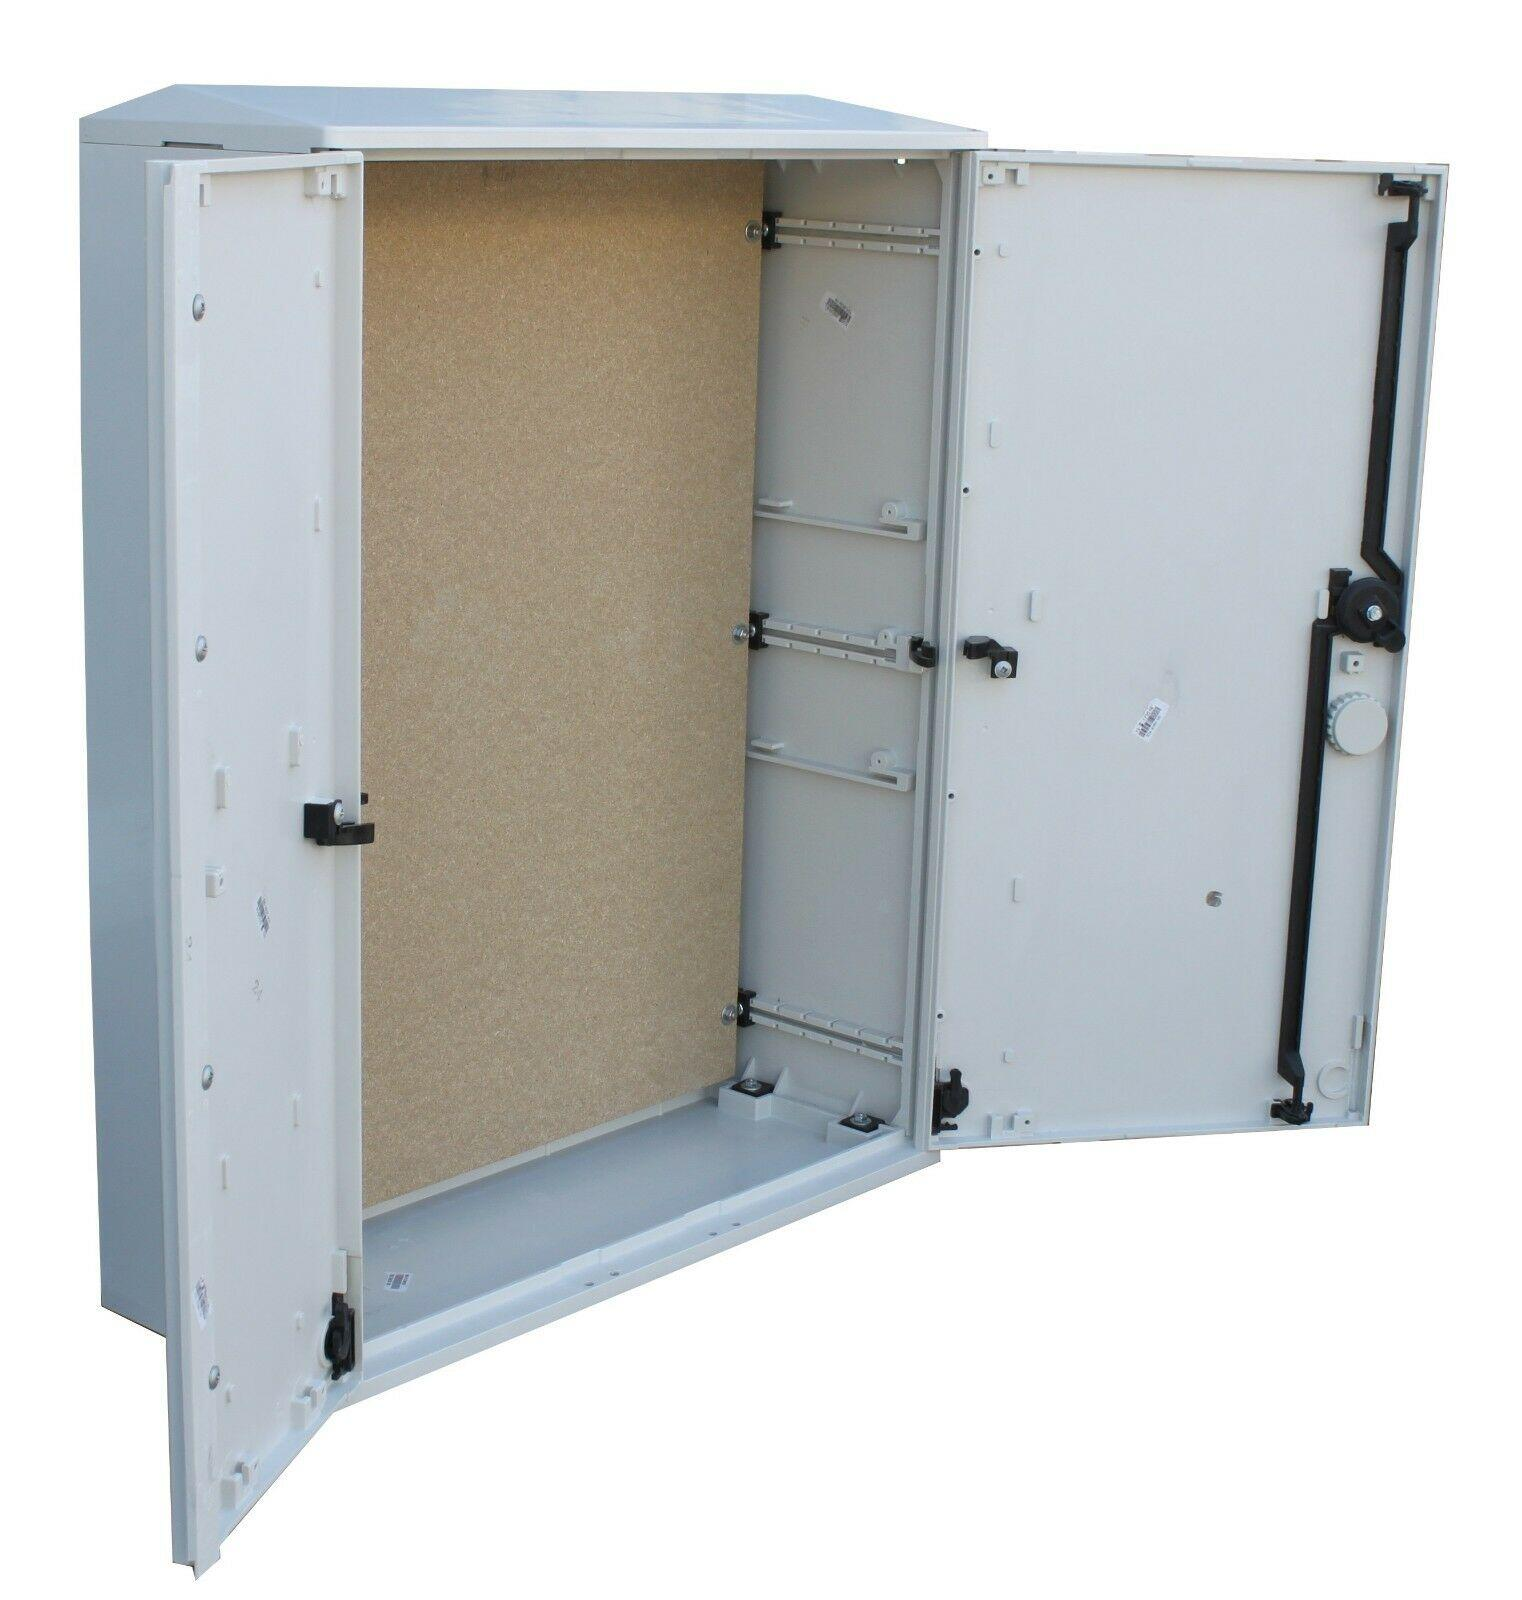 GRP Electric Enclosure, Kiosk, Cabinet, Meter Box, Housing (W660 x H800 x D245mm) Inside Open Doors